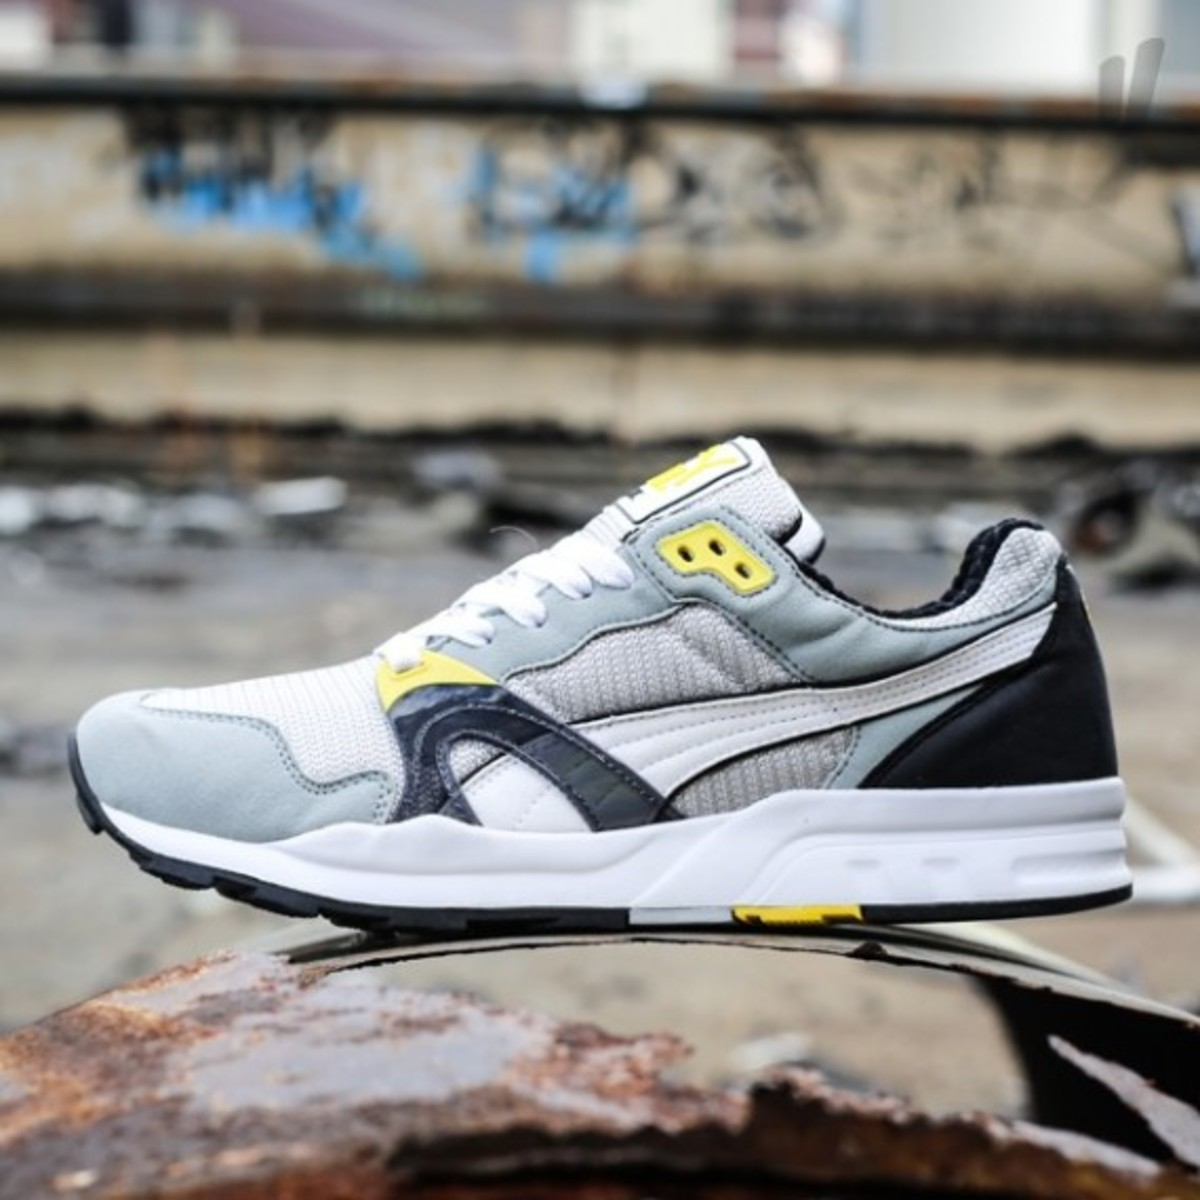 puma-trinomic-xt-1-plus-spring-2014-colors-07